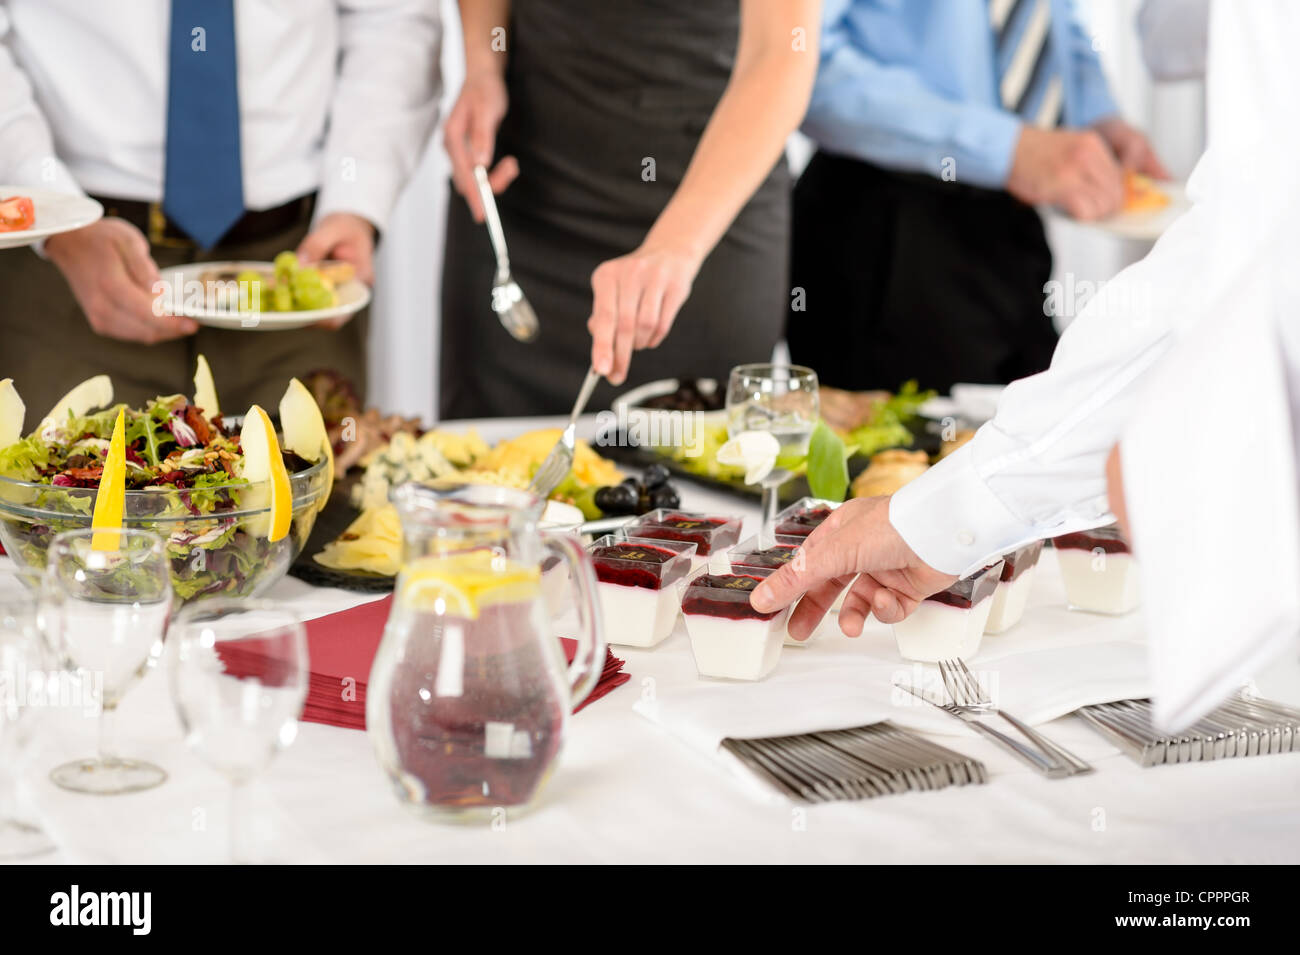 Business catering food for company formal celebration close-up - Stock Image